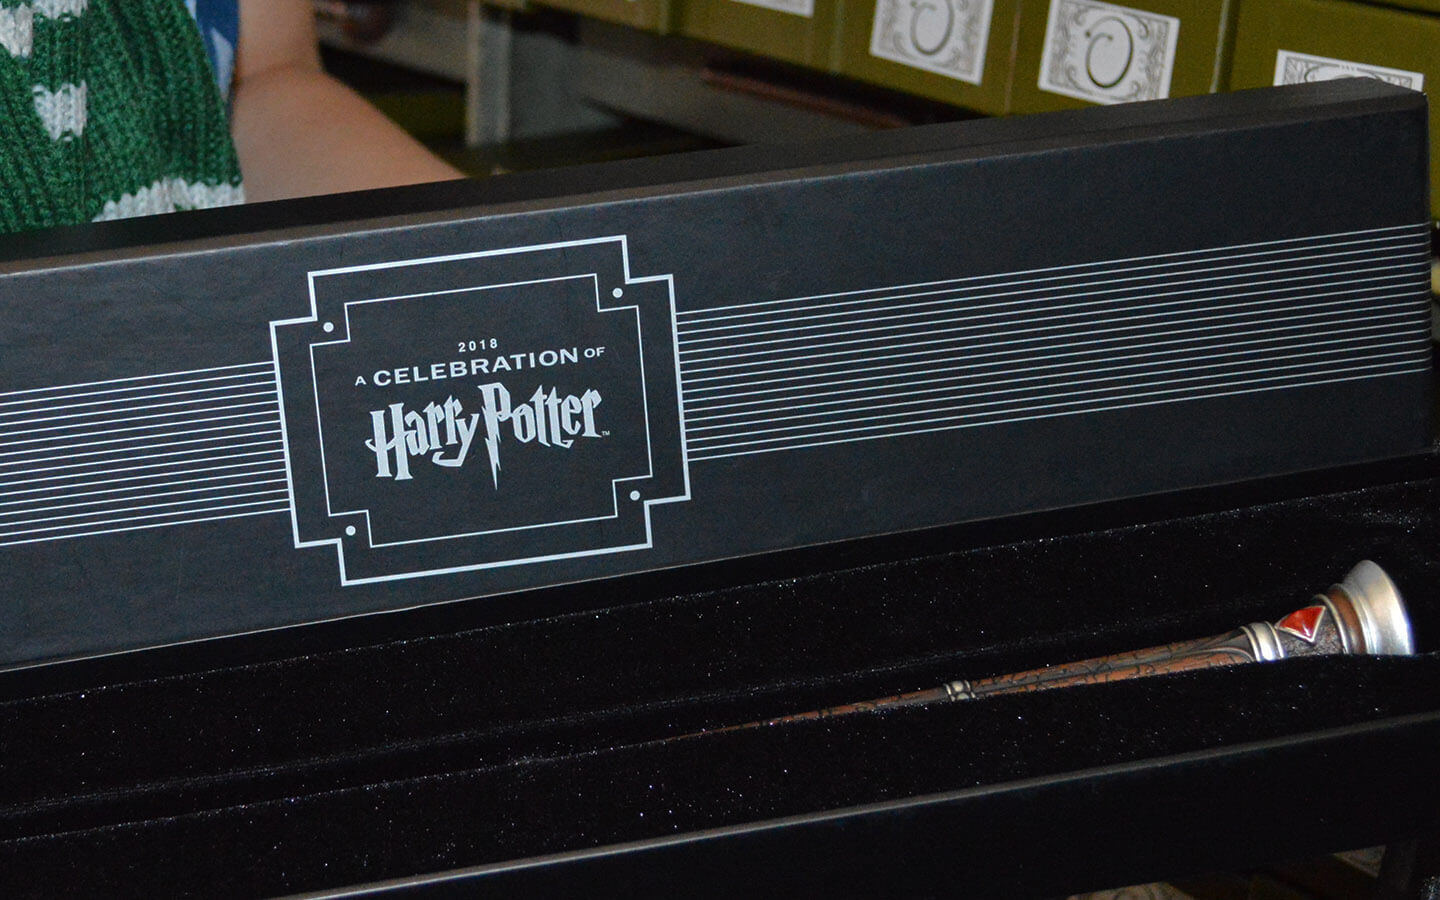 The New Commemorative A Cele Tion Of Harry Potter 2018 Wand Features Silver Adornments With Red And Black Stones